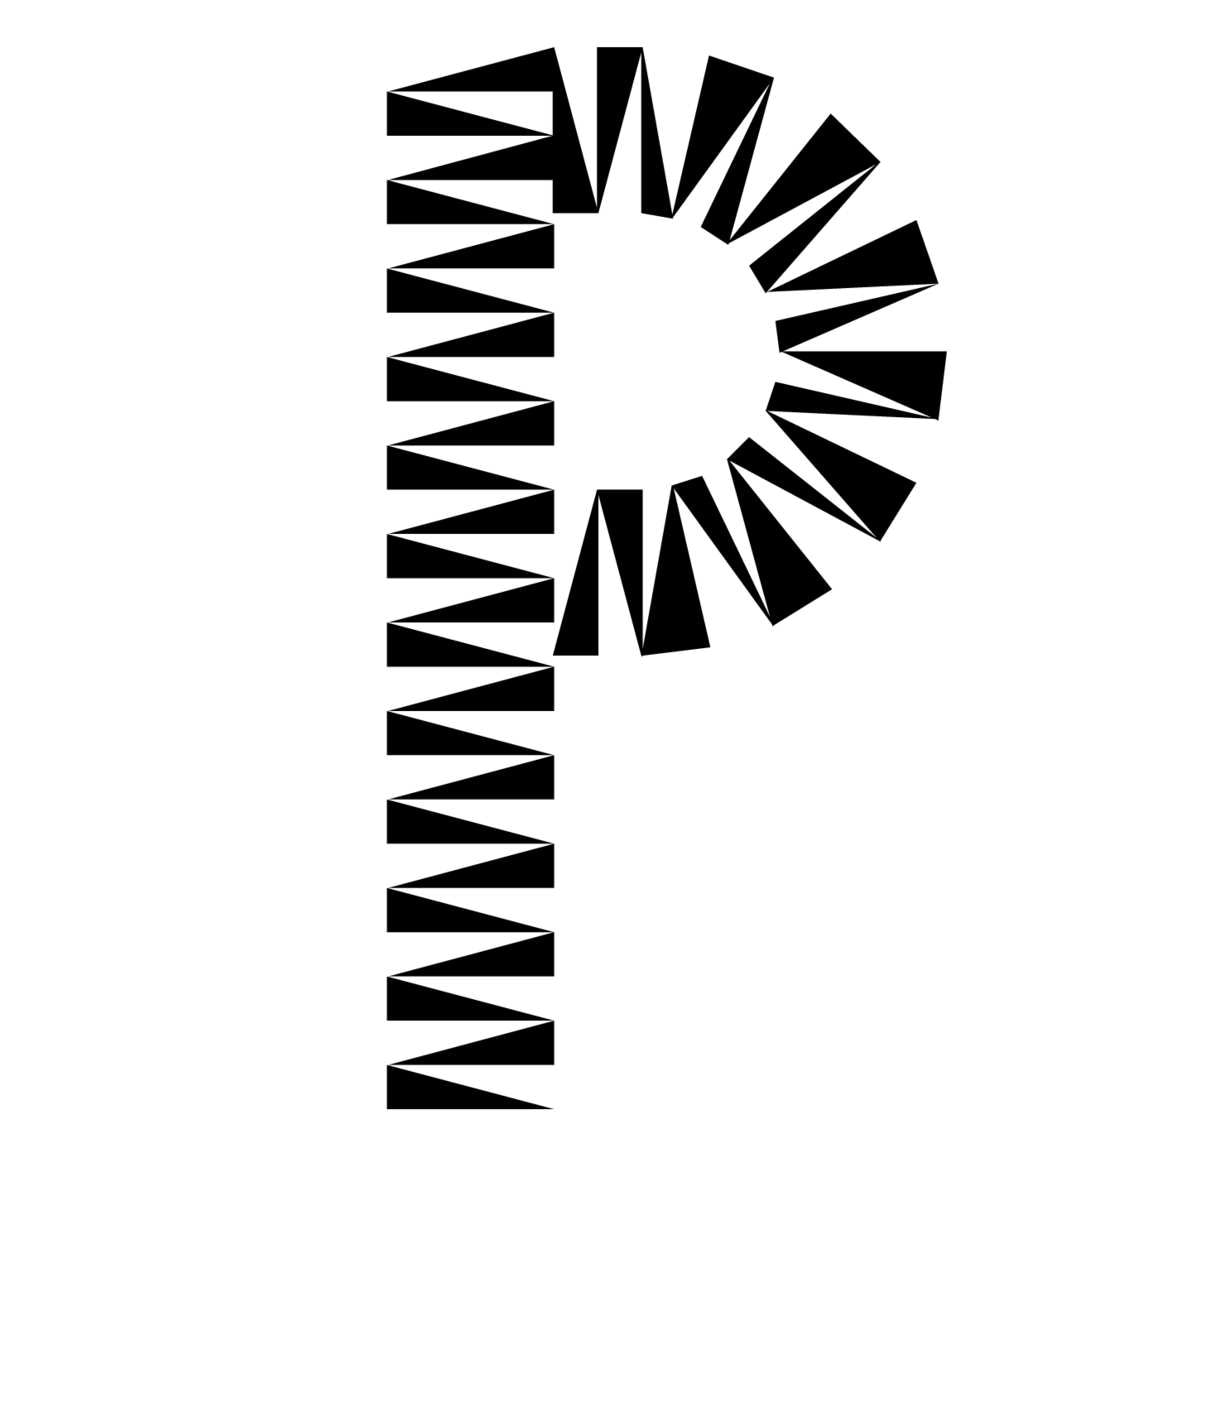 pattern-project-letters-15-1220x1407px